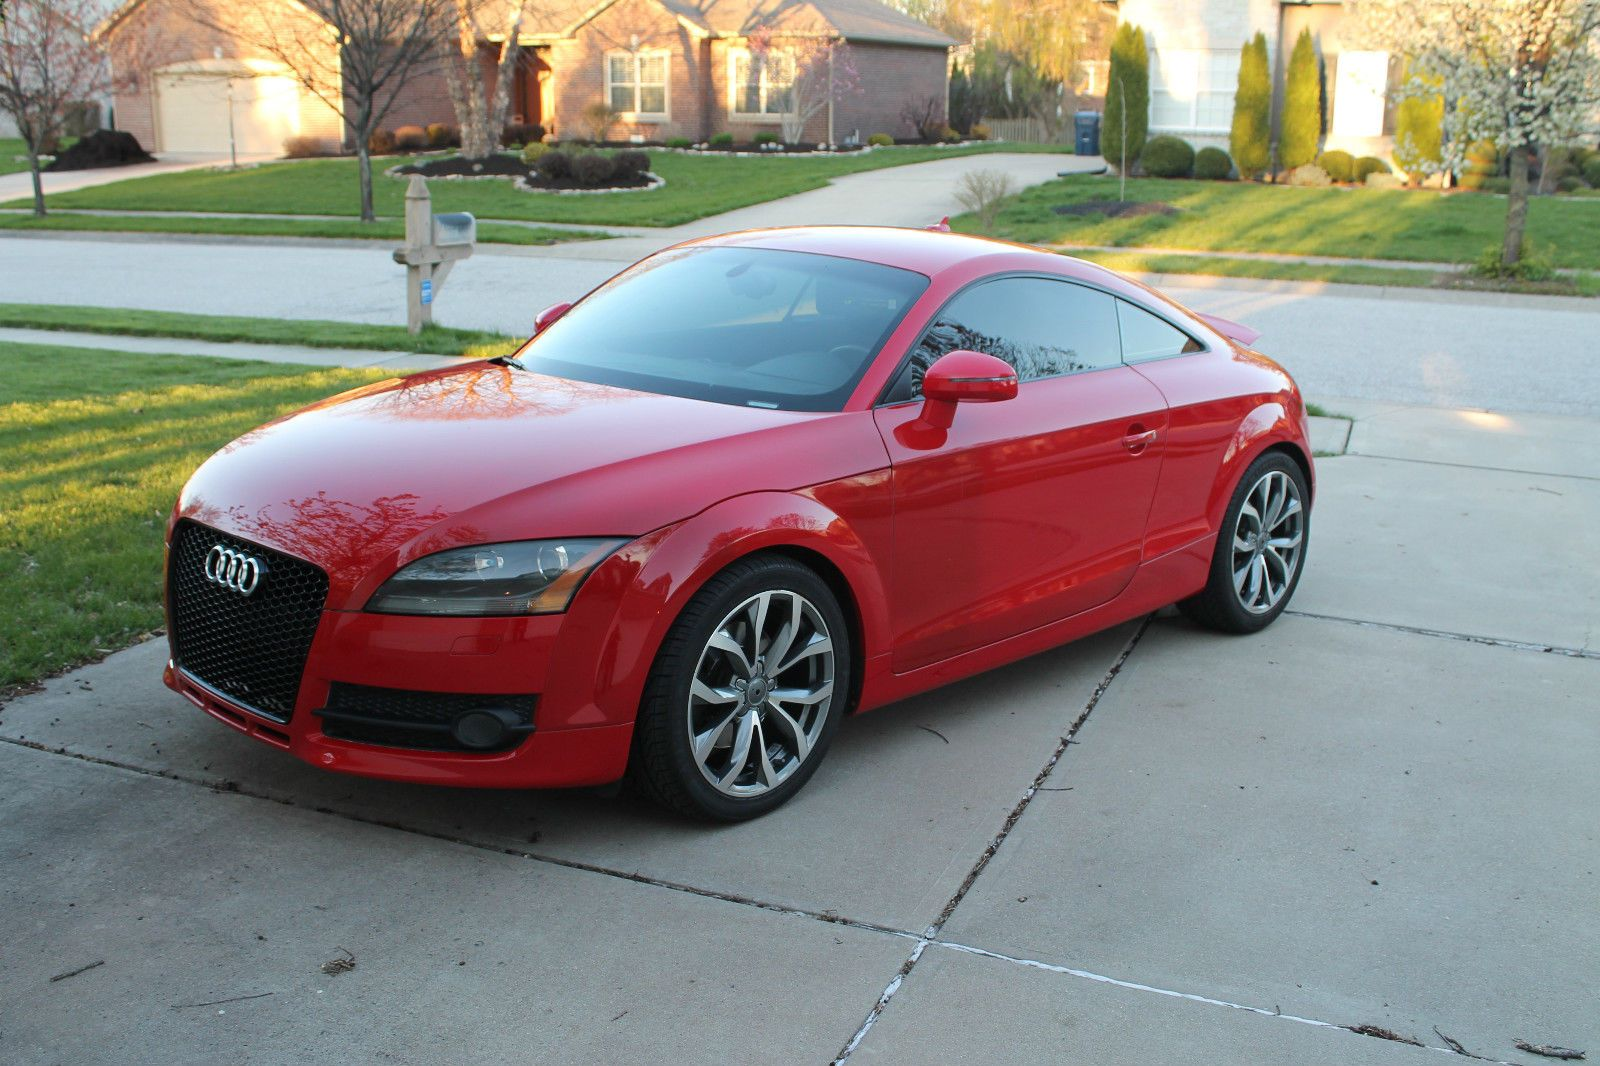 Car Brand Auctioned Audi Tt Base Coupe 2 Door 2008 Car Model Audi Tt Coupe 2 0 T Apr Stage 2 Turbo Red Check More At Http Auctioncars Online Product Car Brand